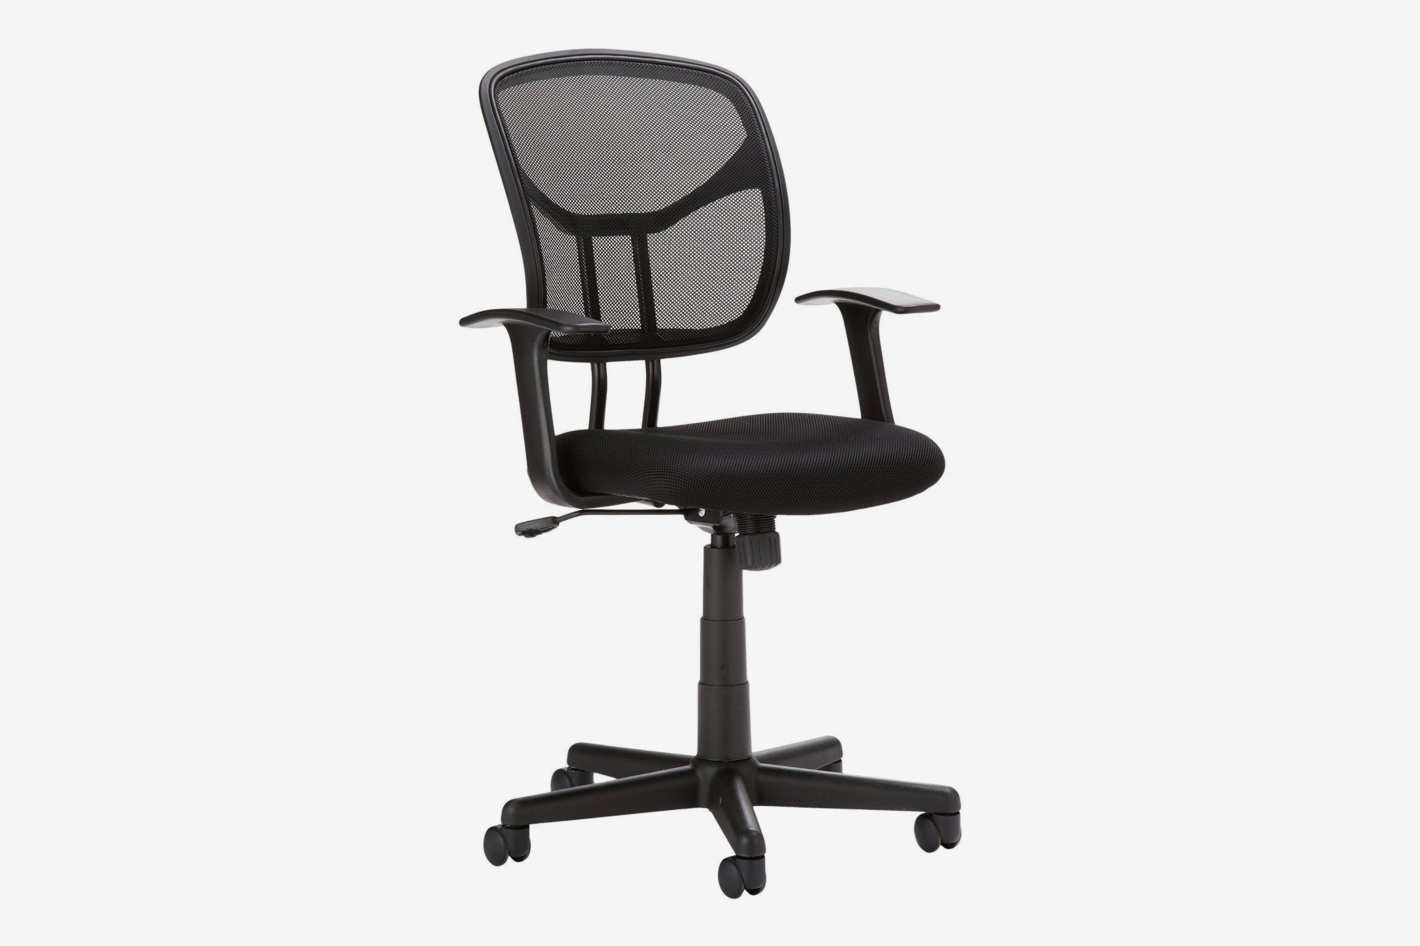 15 Best Office Chairs And Home Office Chairs 2019